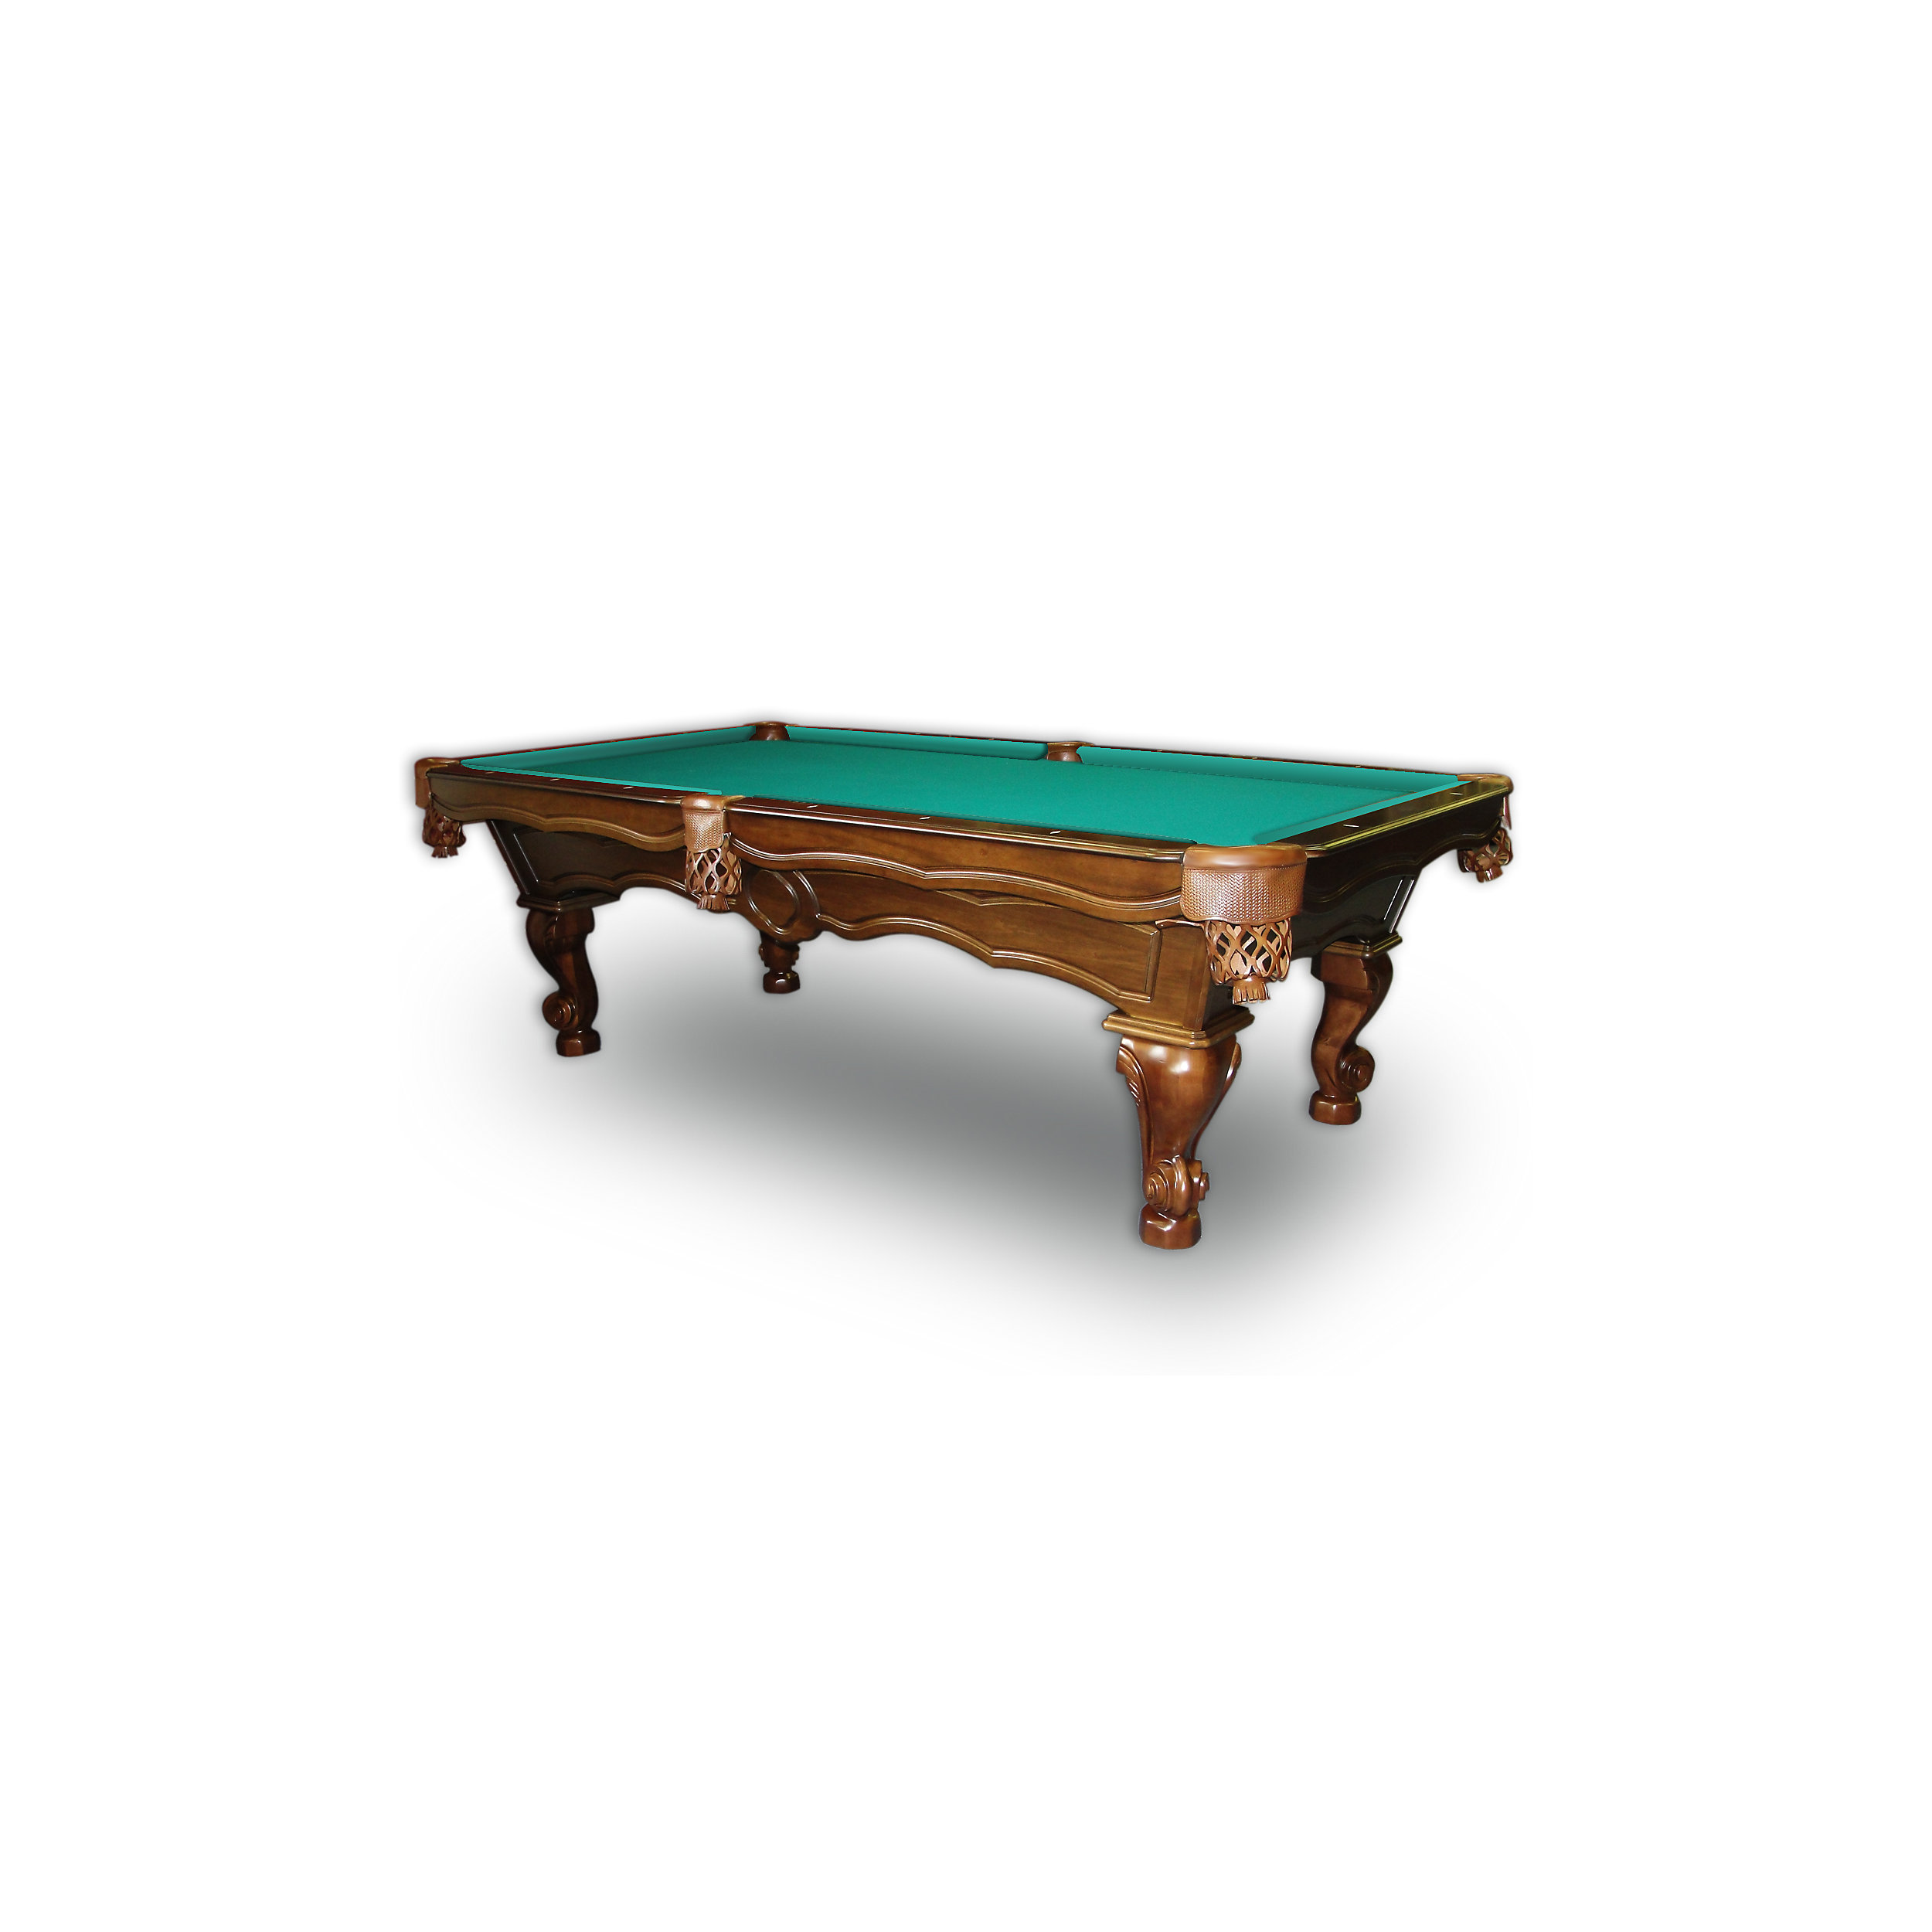 225 : olhausen pool table covers - amorenlinea.org